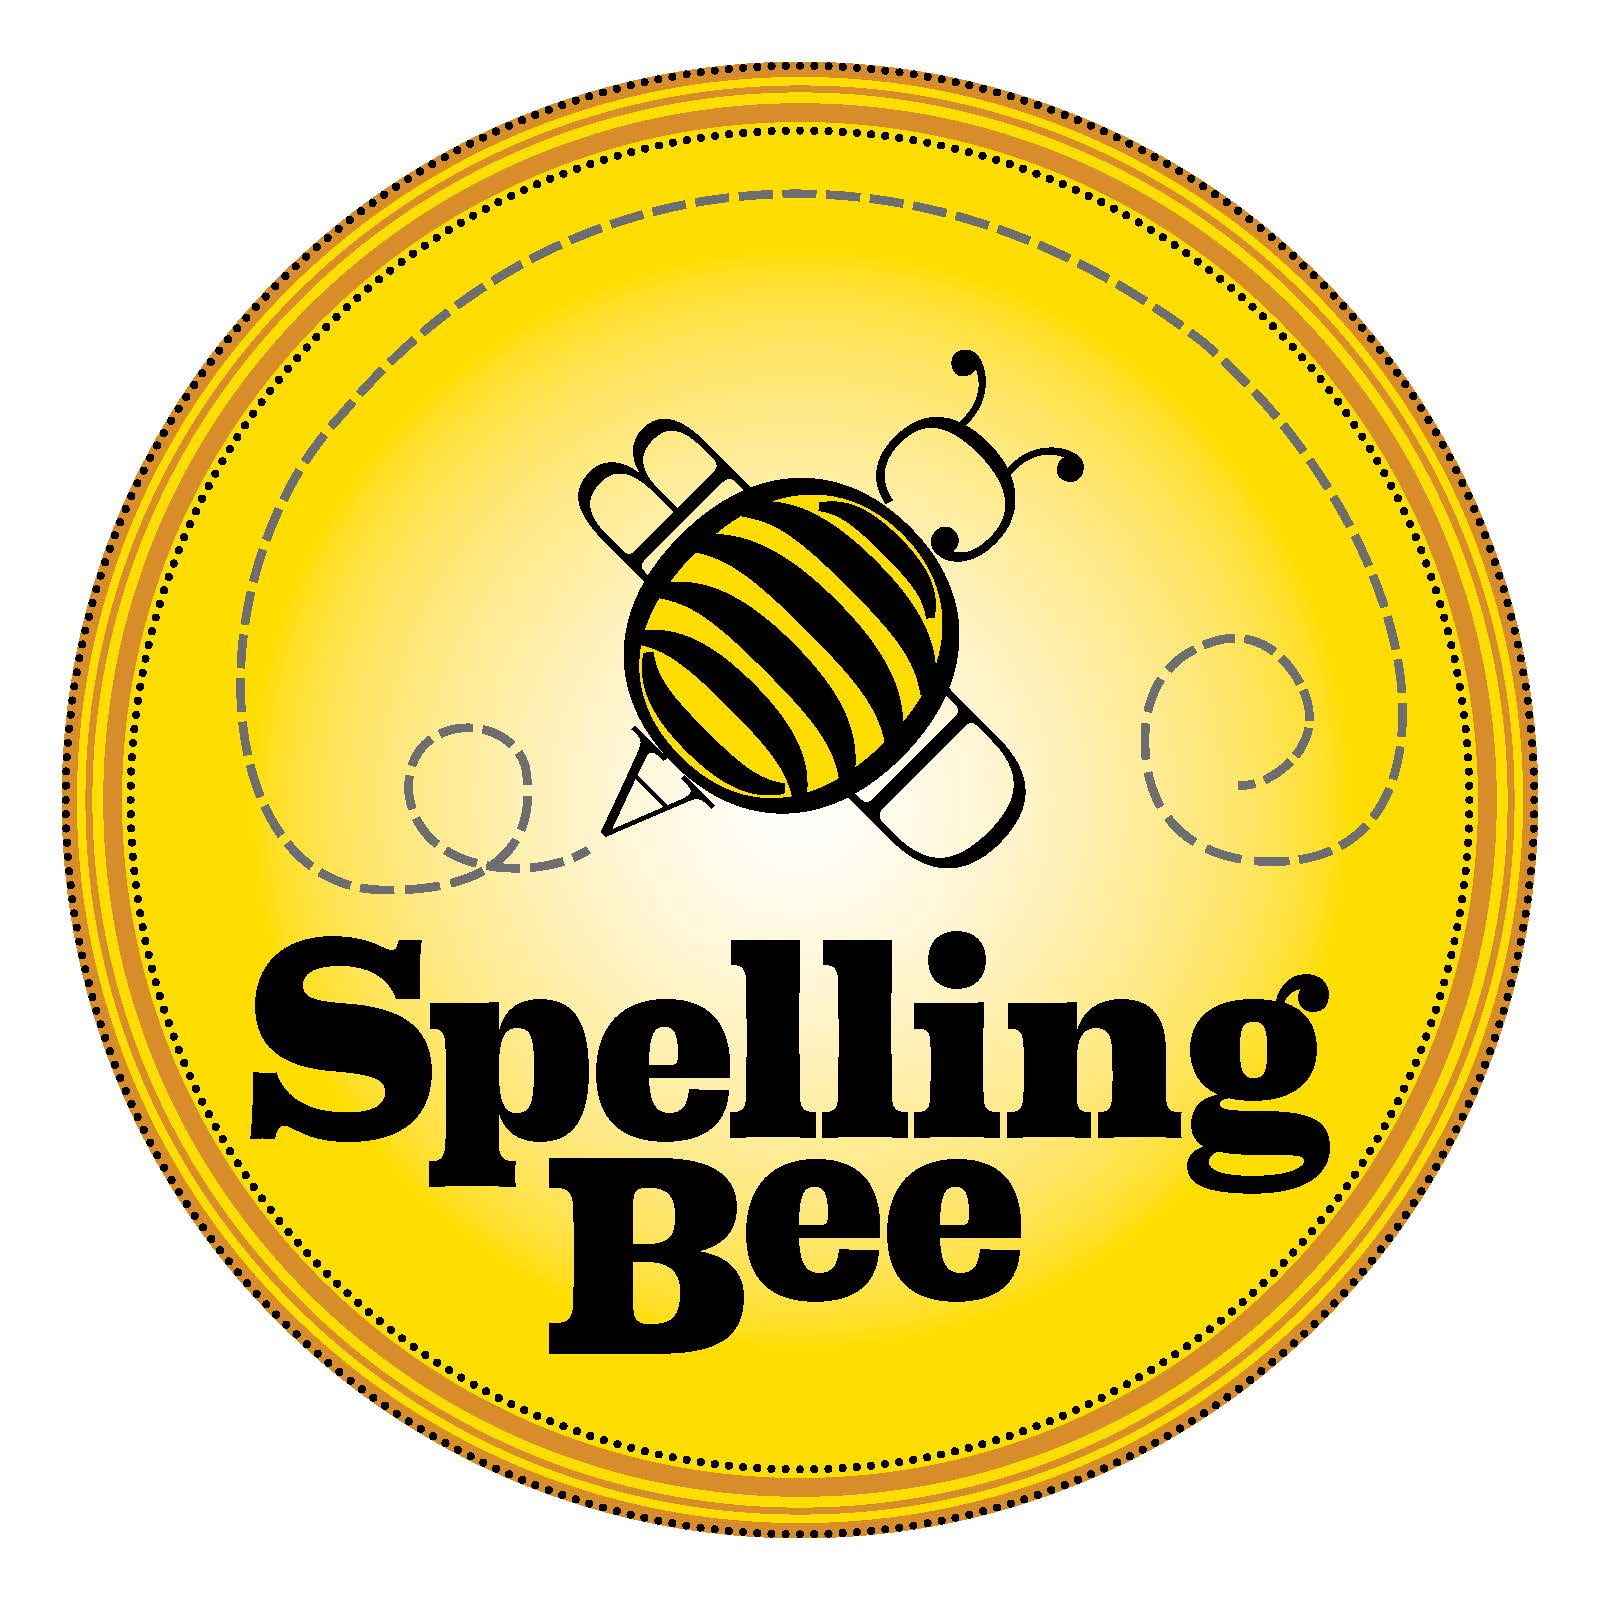 Homeschool Spellers Travel to National Bee